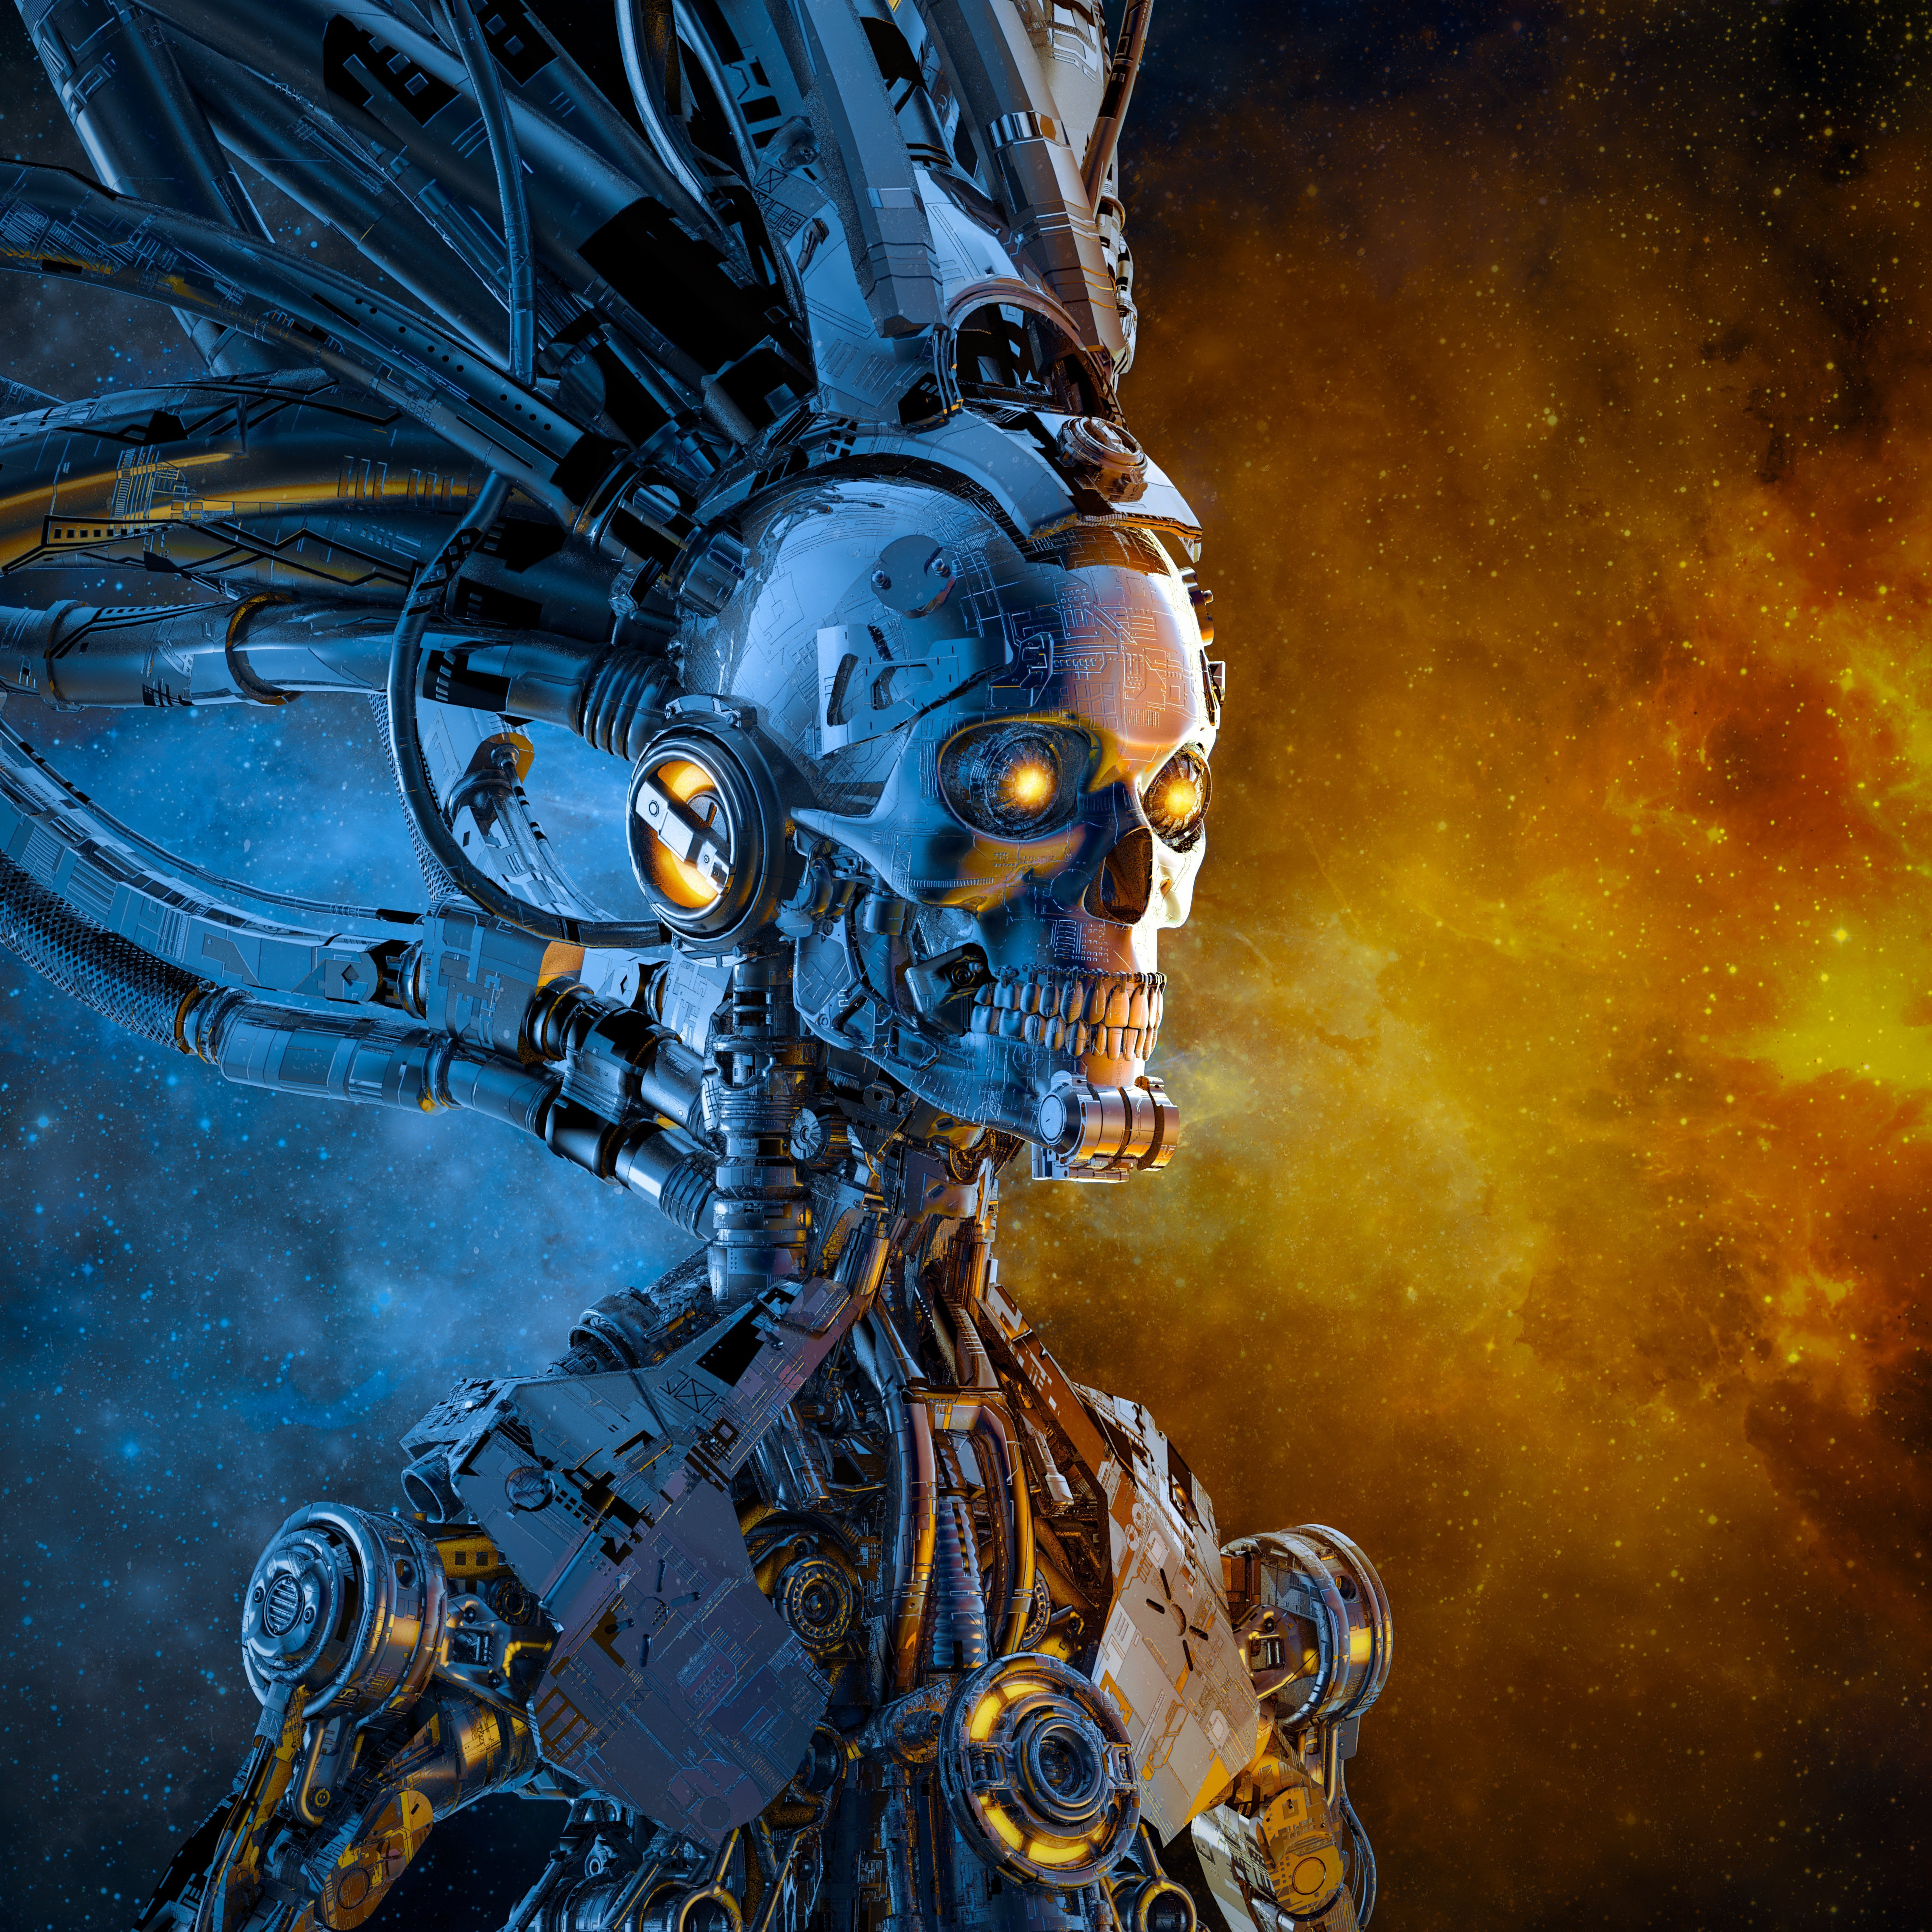 Galactic reaper duality / 3D illustration of scary futuristic science fiction skull faced humanoid cyborg lit by blazing galaxy in outer space